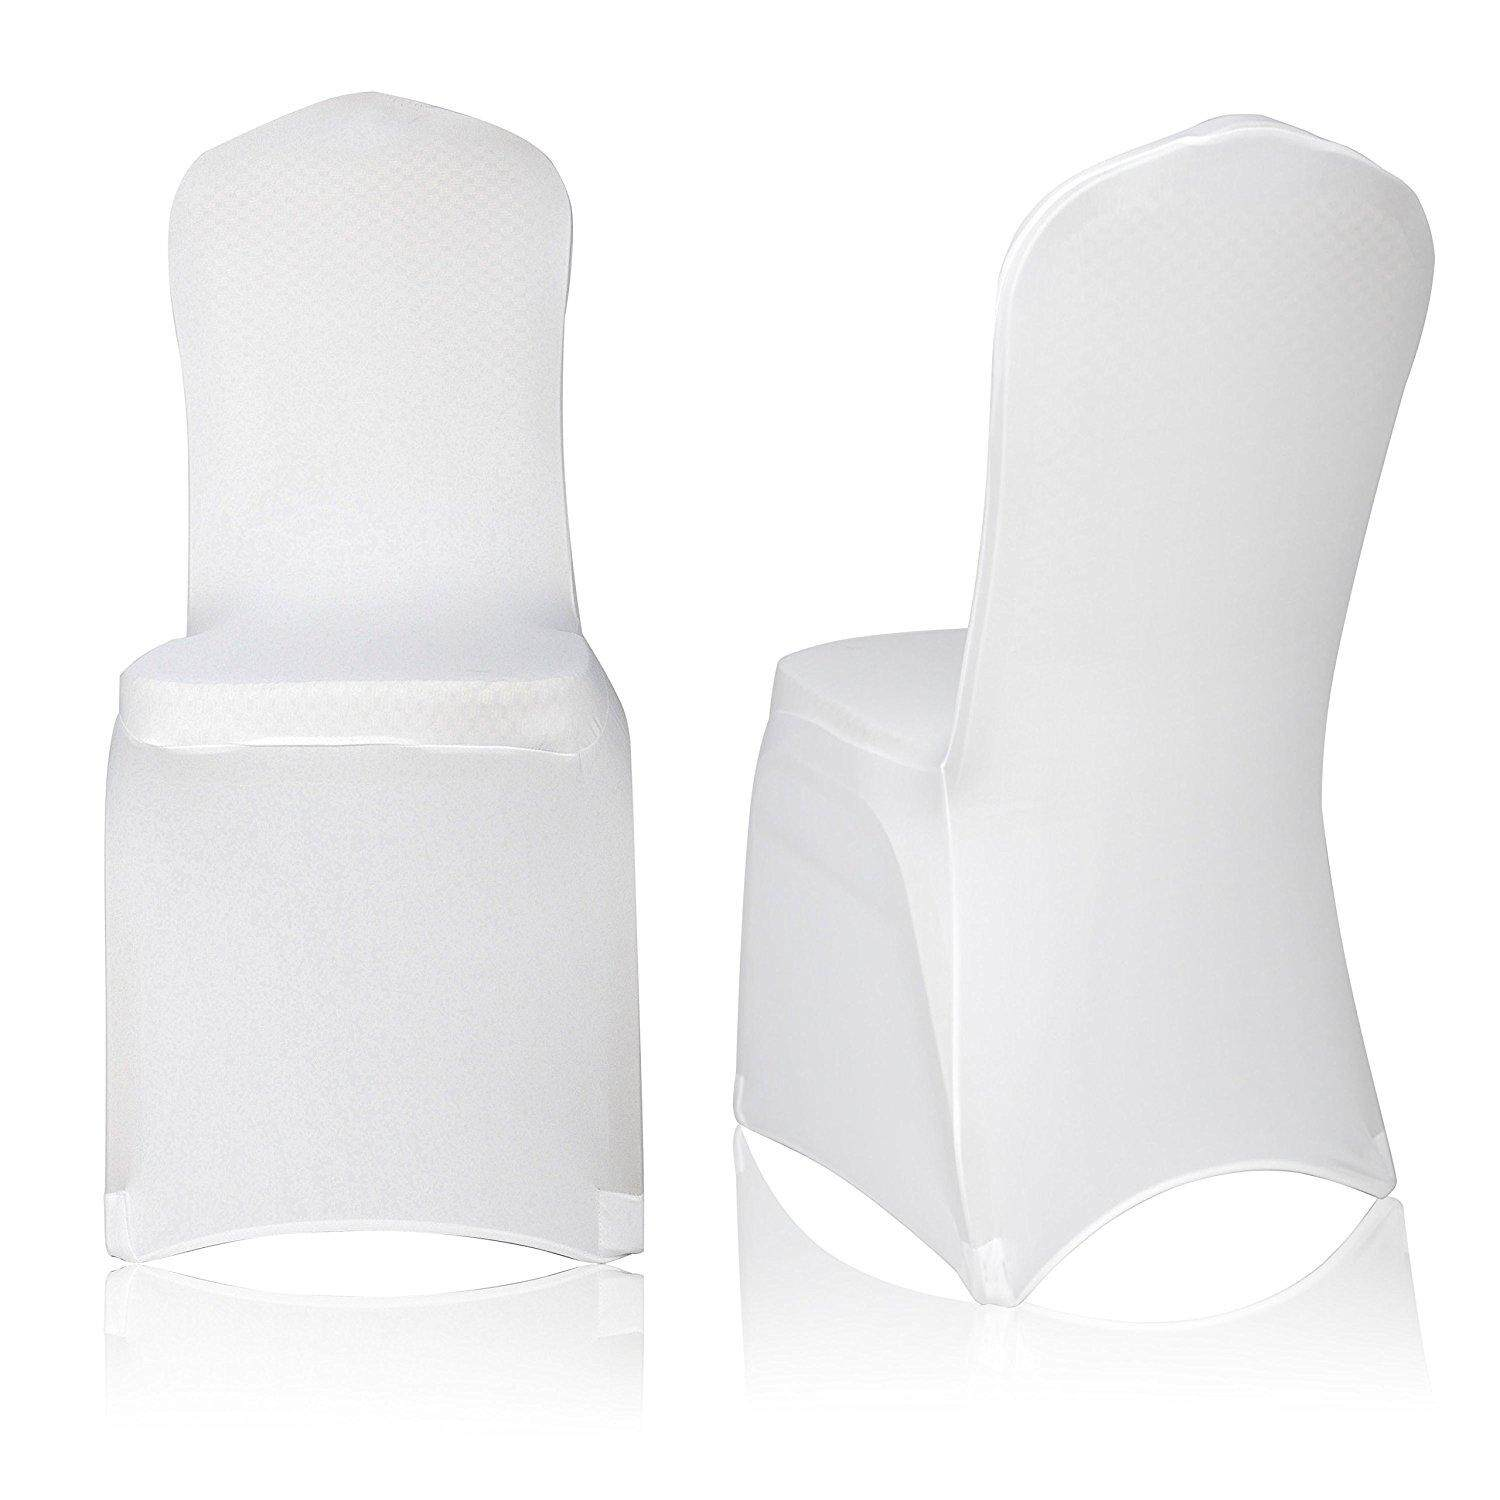 Lightning Power-Set of 5pcs Polyester Spandex Banquet Wedding Party Chair Covers Elastic chair cover Siamese wedding chair cover seat hotel banquet meeting hotel universal chair cover(White Color)